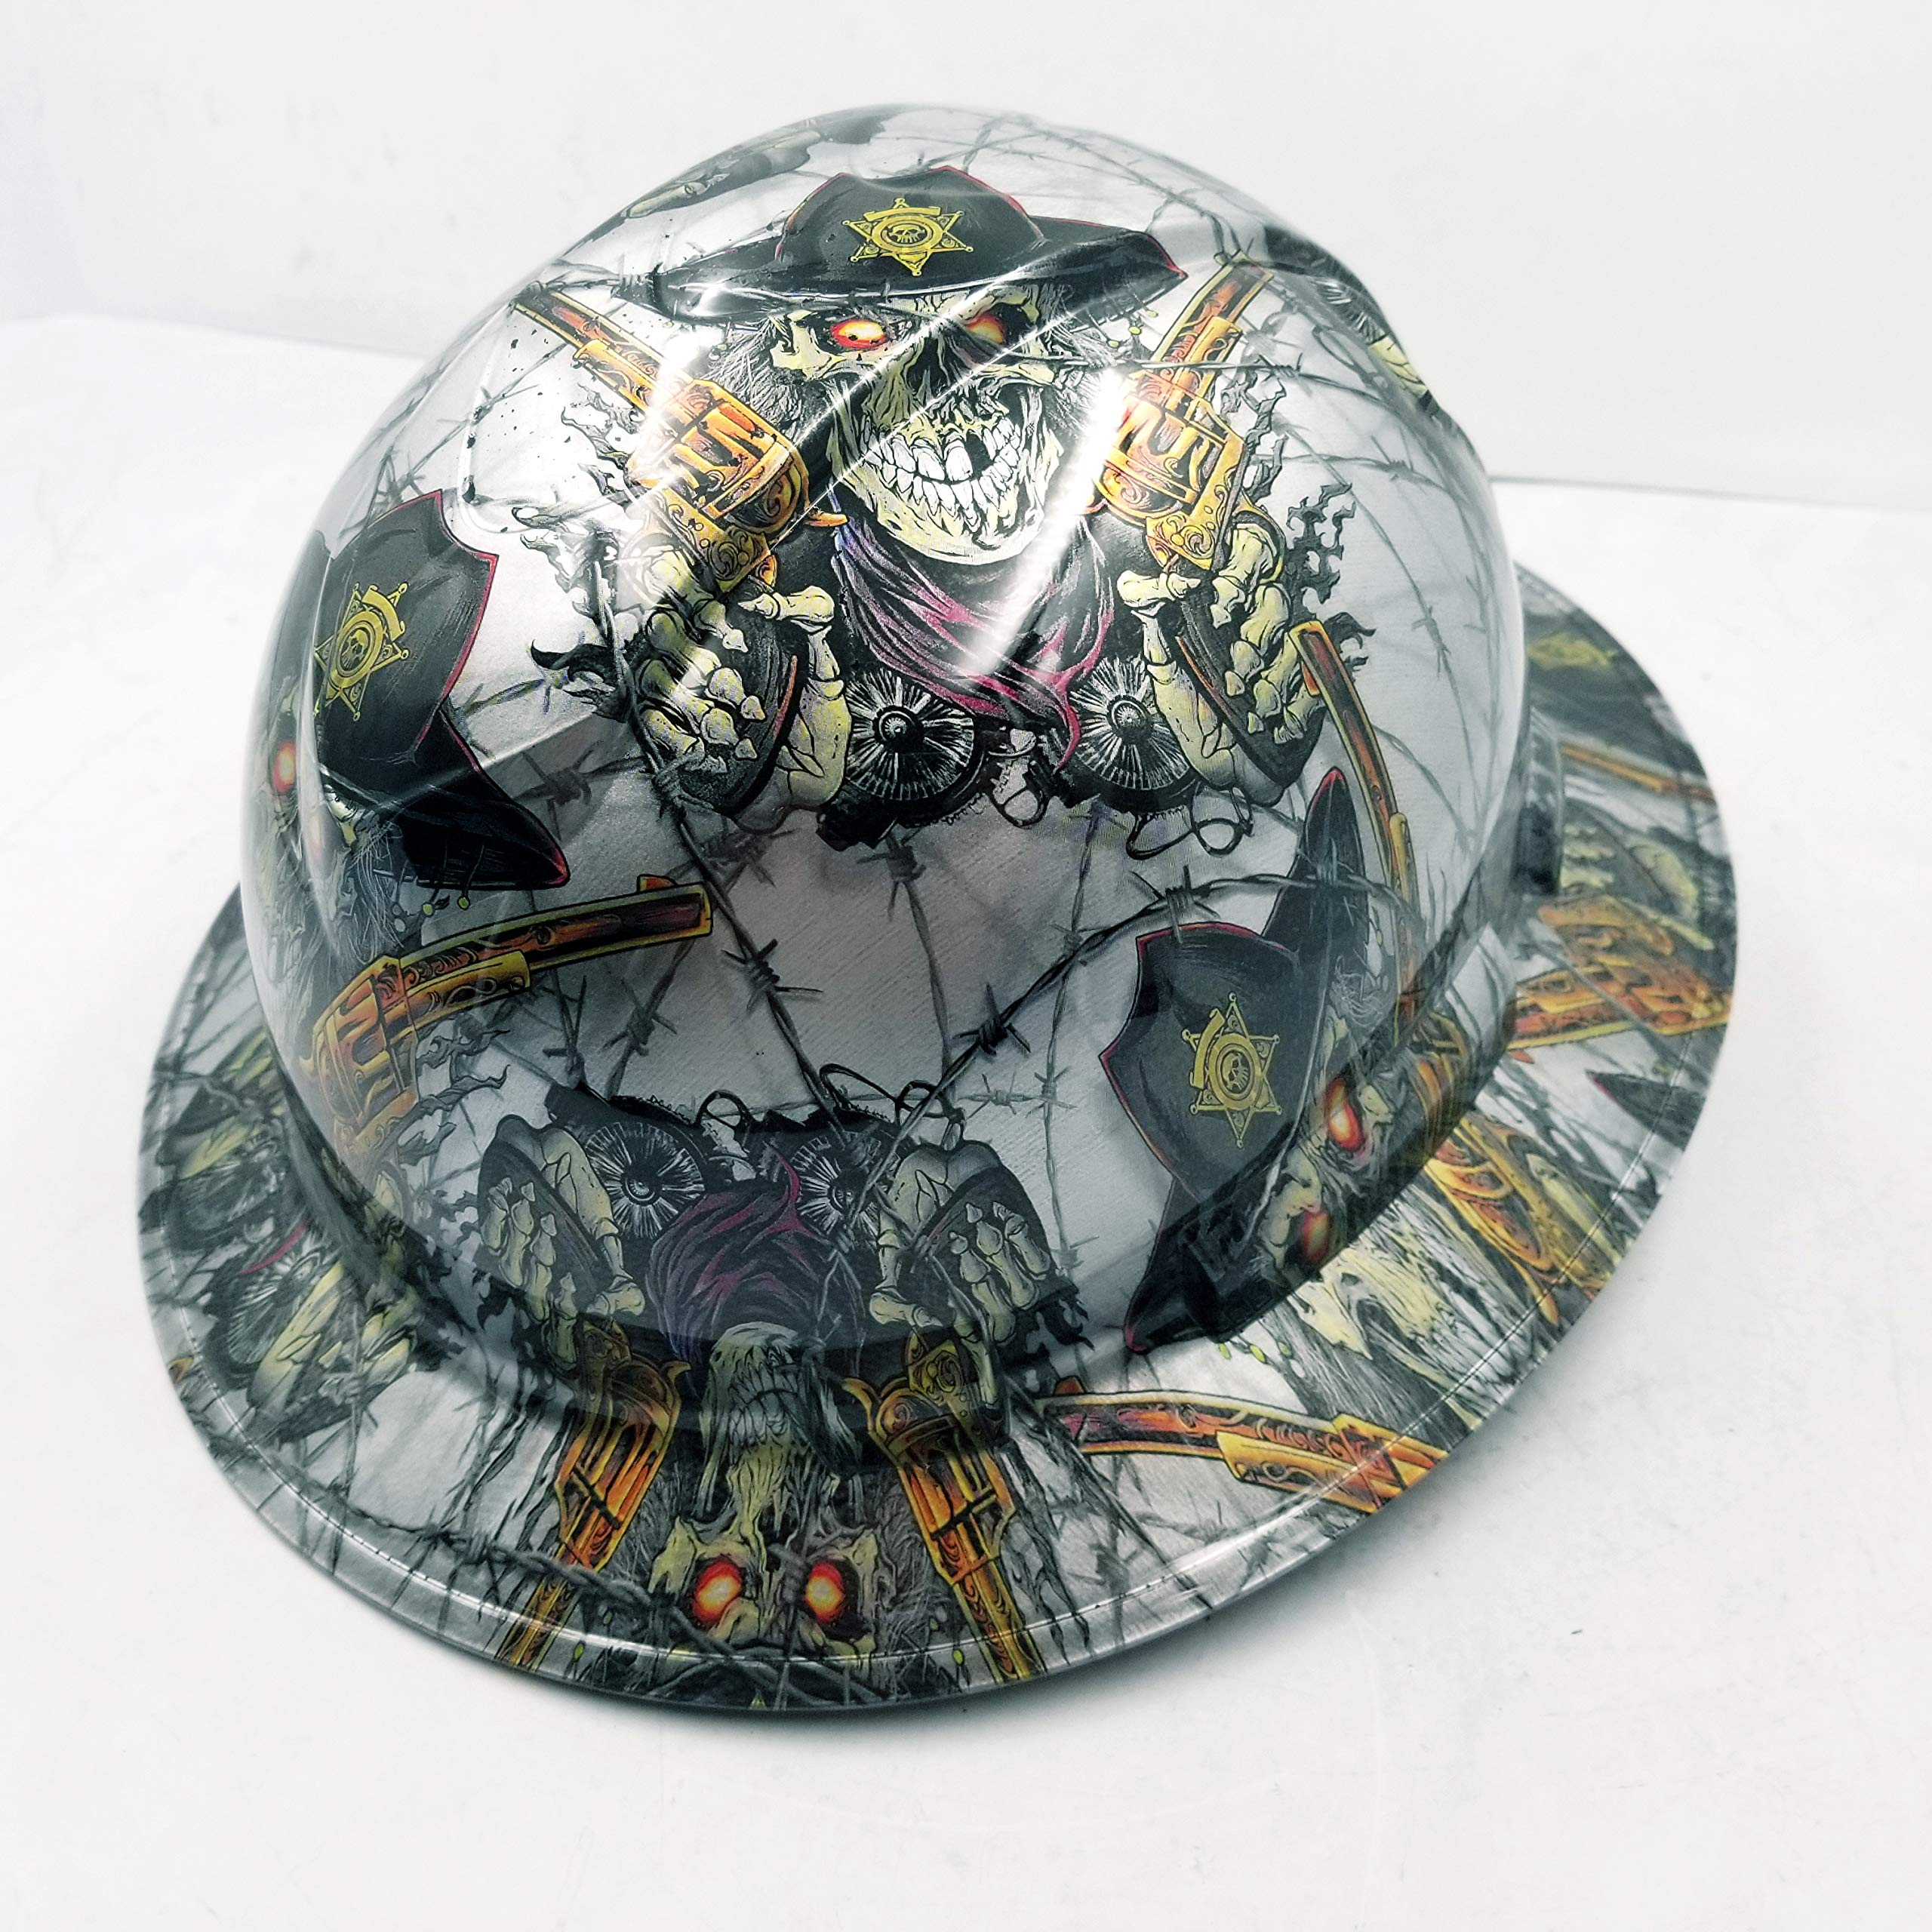 Wet Works Imaging Customized Pyramex Full Brim Dirty Dirty Harry Hard HAT with Ratcheting Suspension Custom LIDS Crazy Sick Construction PPE by Wet Works Imaging (Image #5)